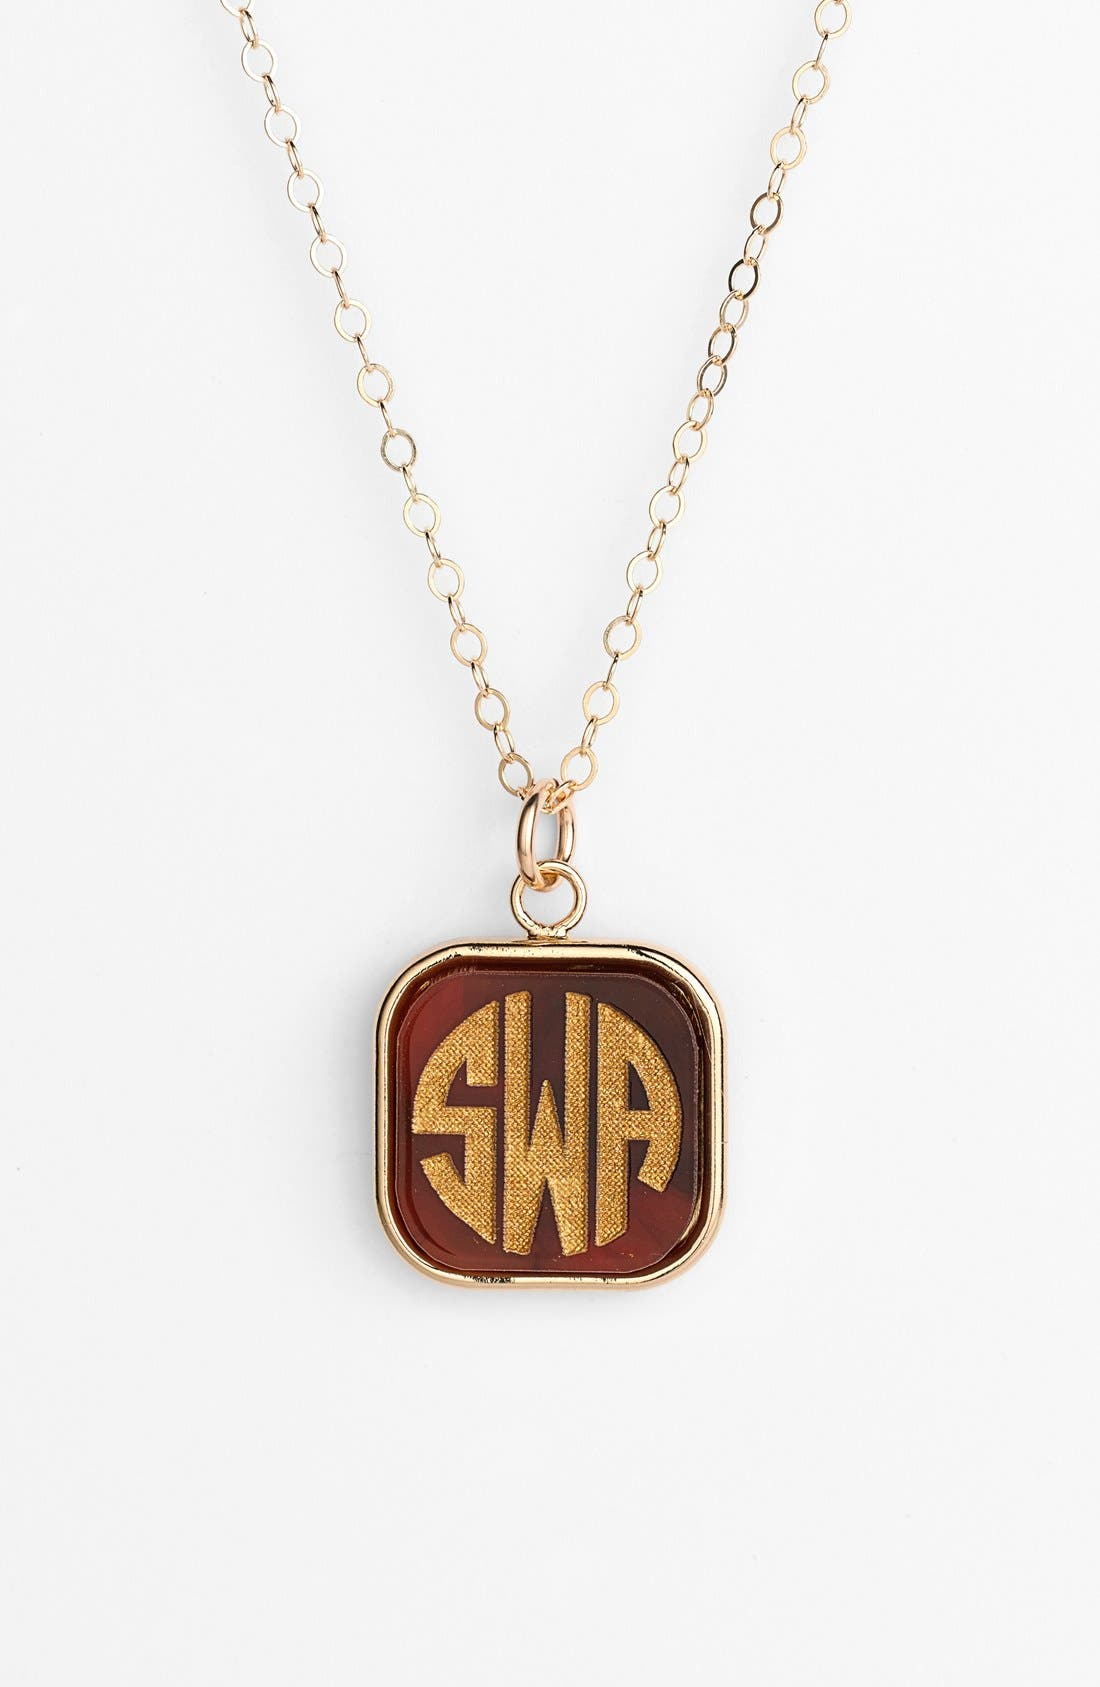 MOON AND LOLA 'Vineyard' Personalized Monogram Pendant Necklace in Tortoise